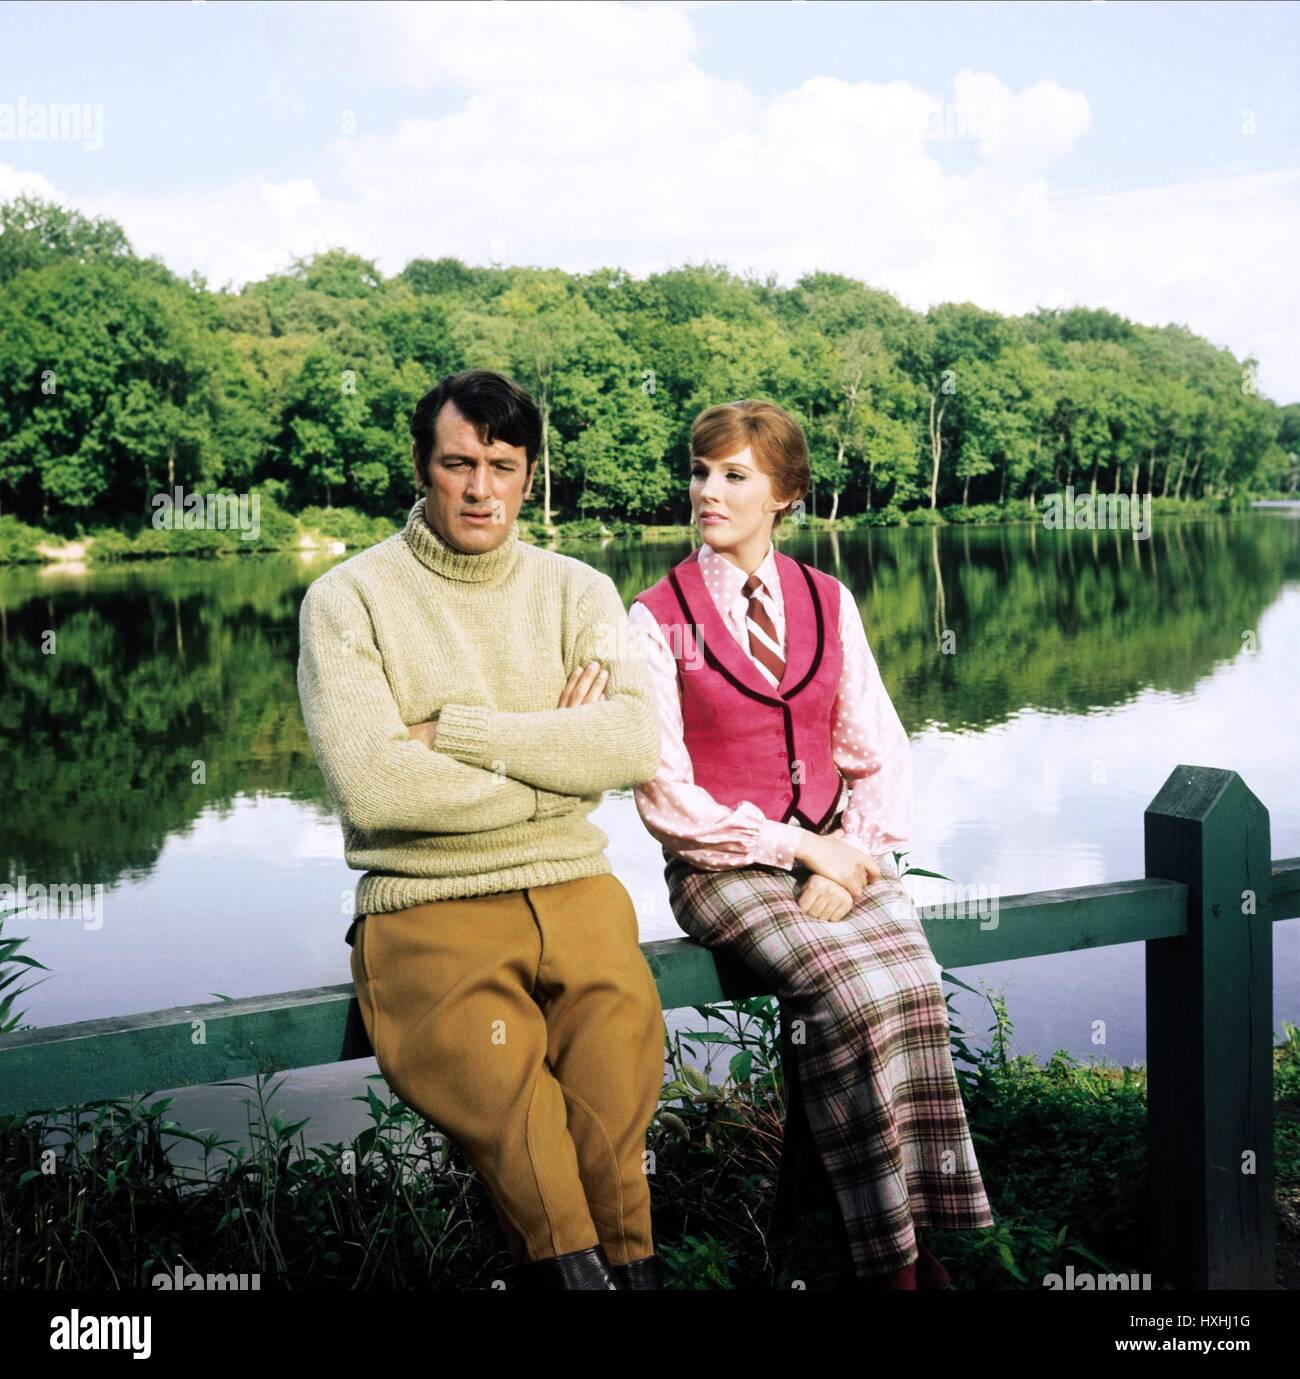 ROCK HUDSON, JULIE ANDREWS, DARLING LILI, 1970 - Stock Image